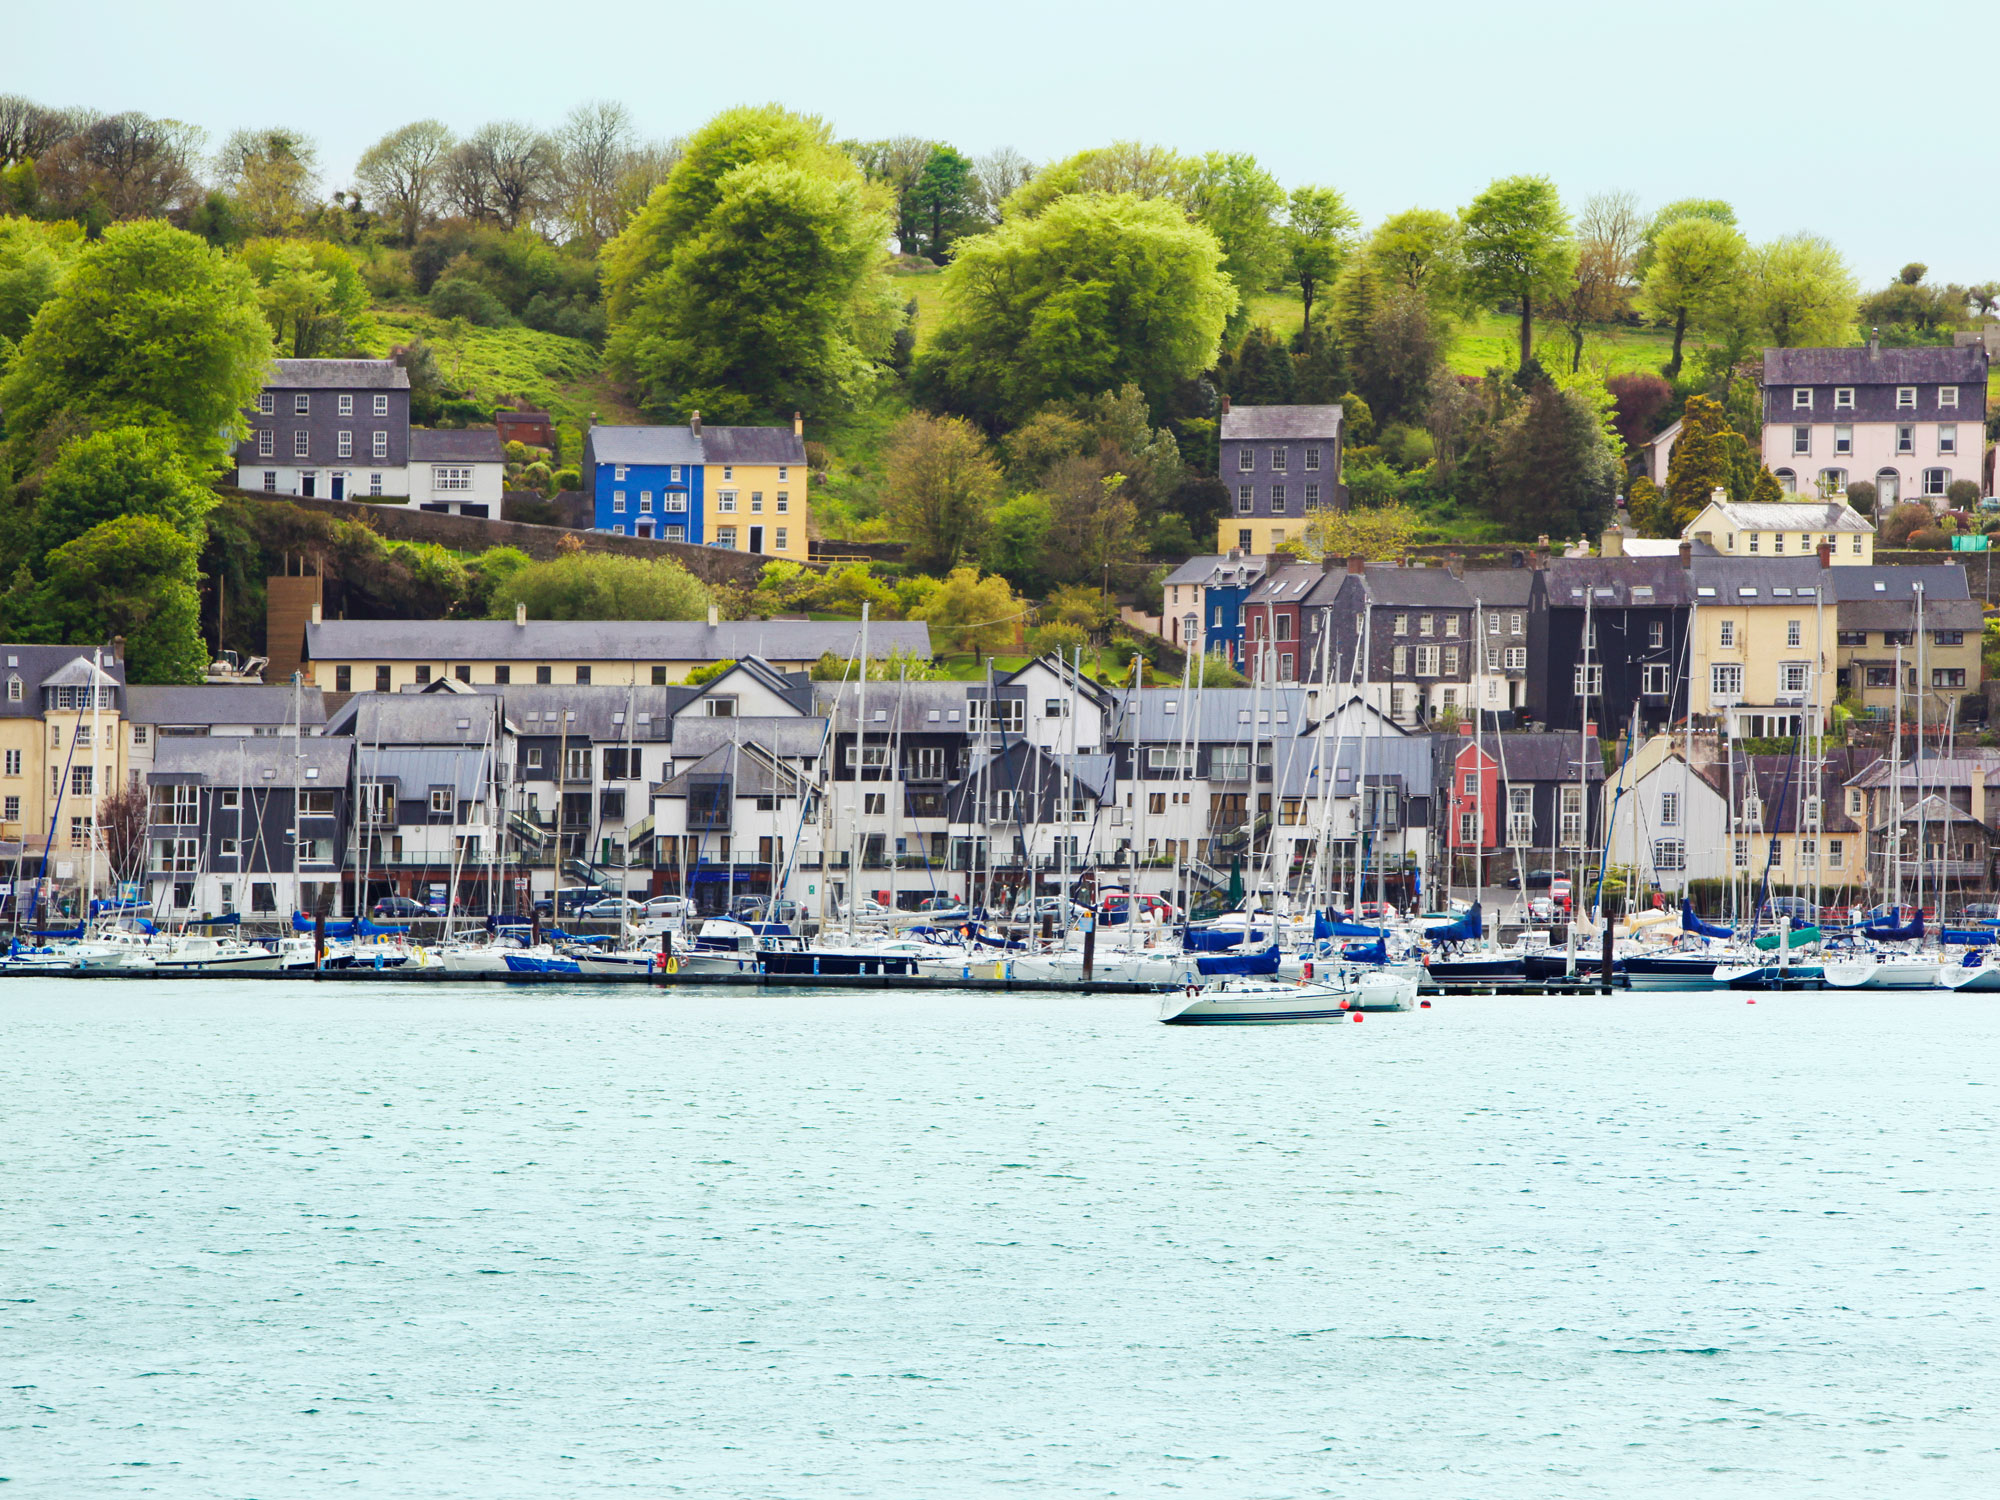 Harbor in Cork, Ireland.